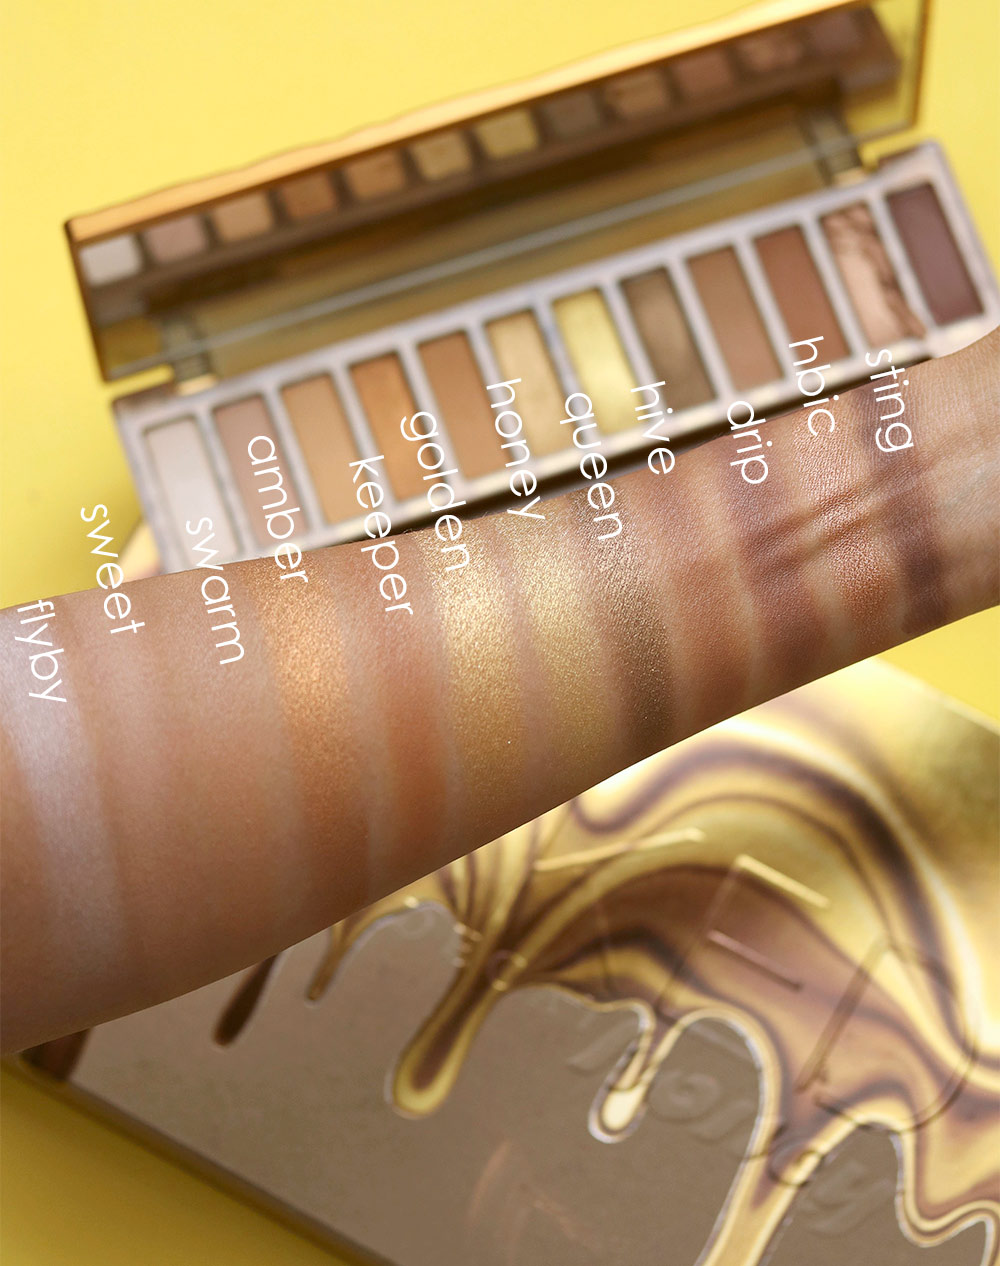 The New Urban Decay Naked Honey Is a Sweet New Golden Eyeshadow Palette